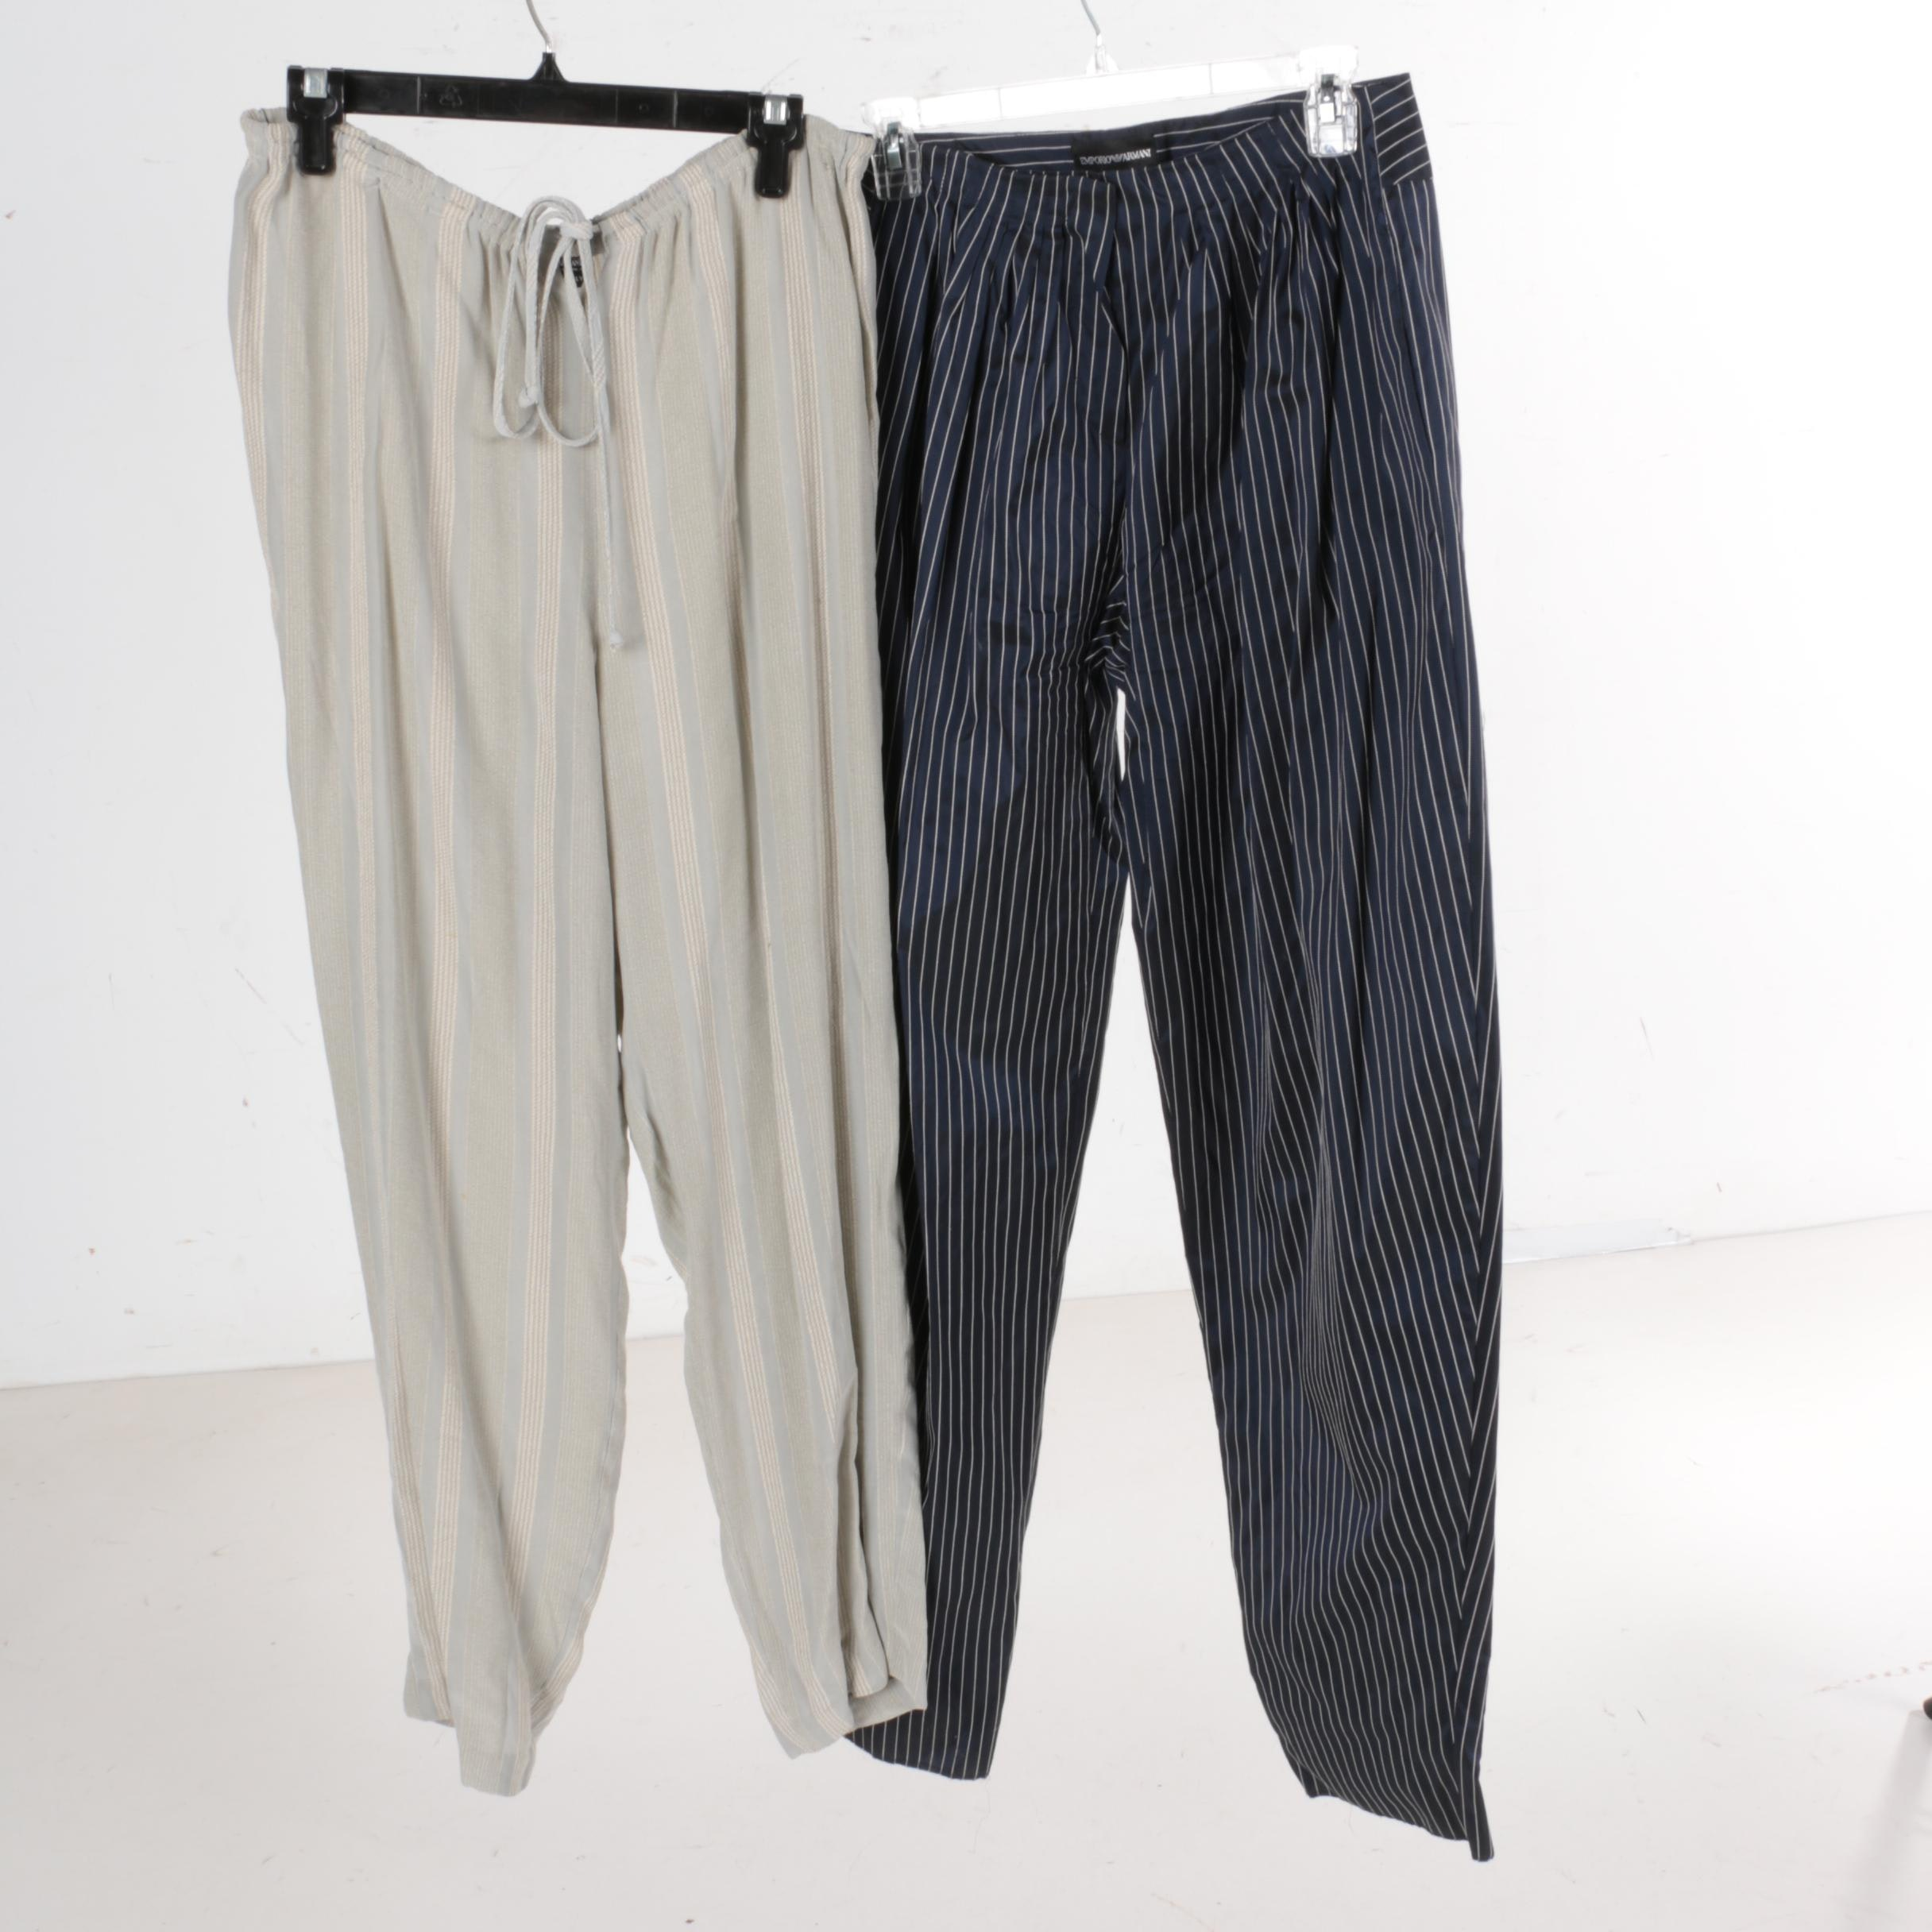 Women's Pants Including Giorgio Armani